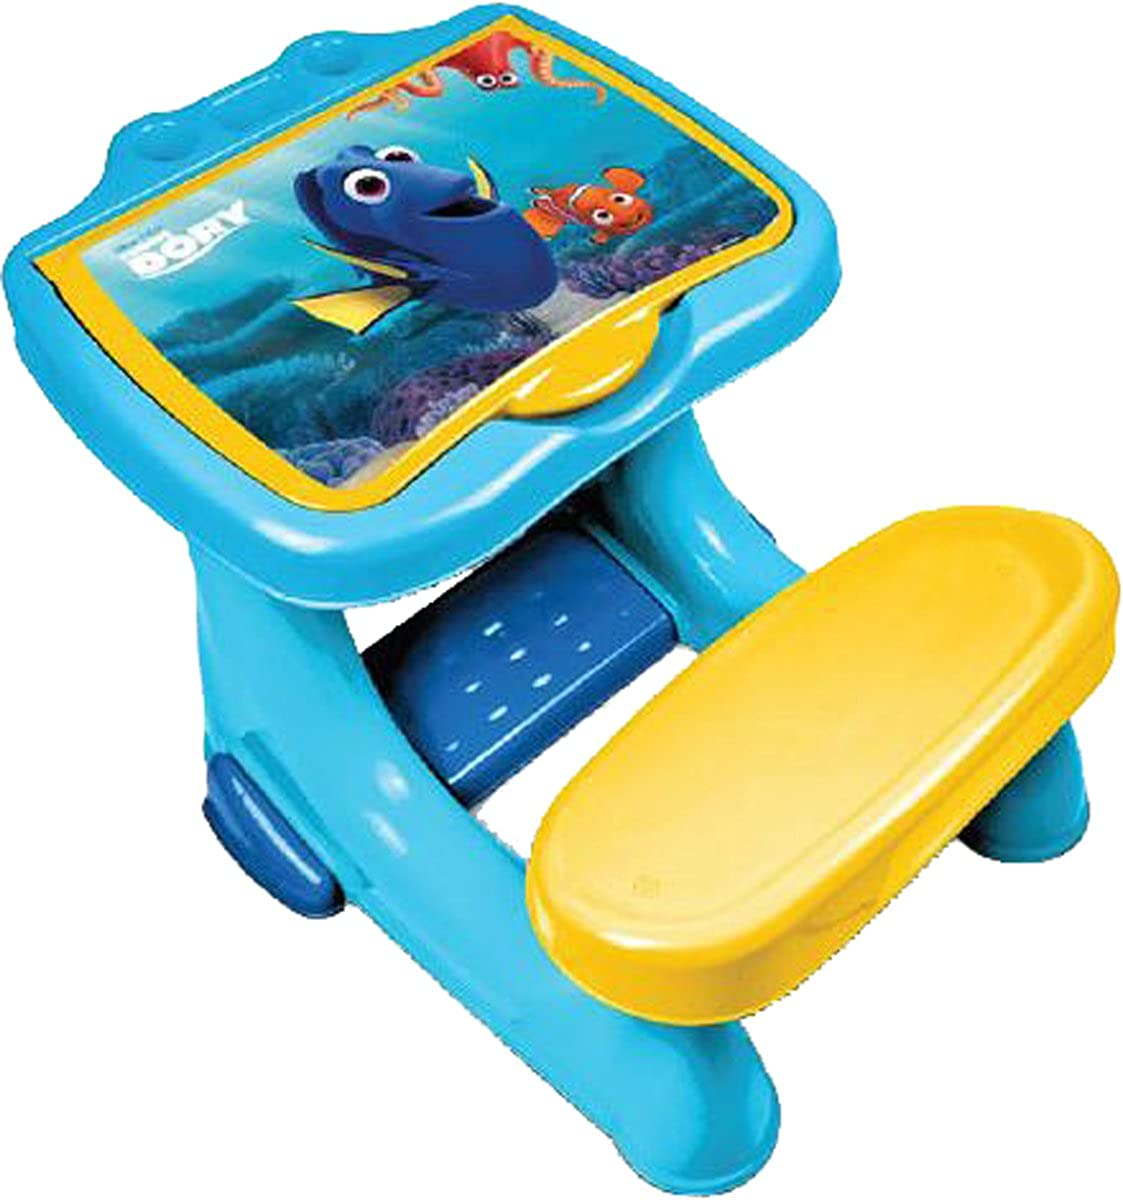 Childrens Disney Finding Dory Activity Kids Educational Desk With Storage Space